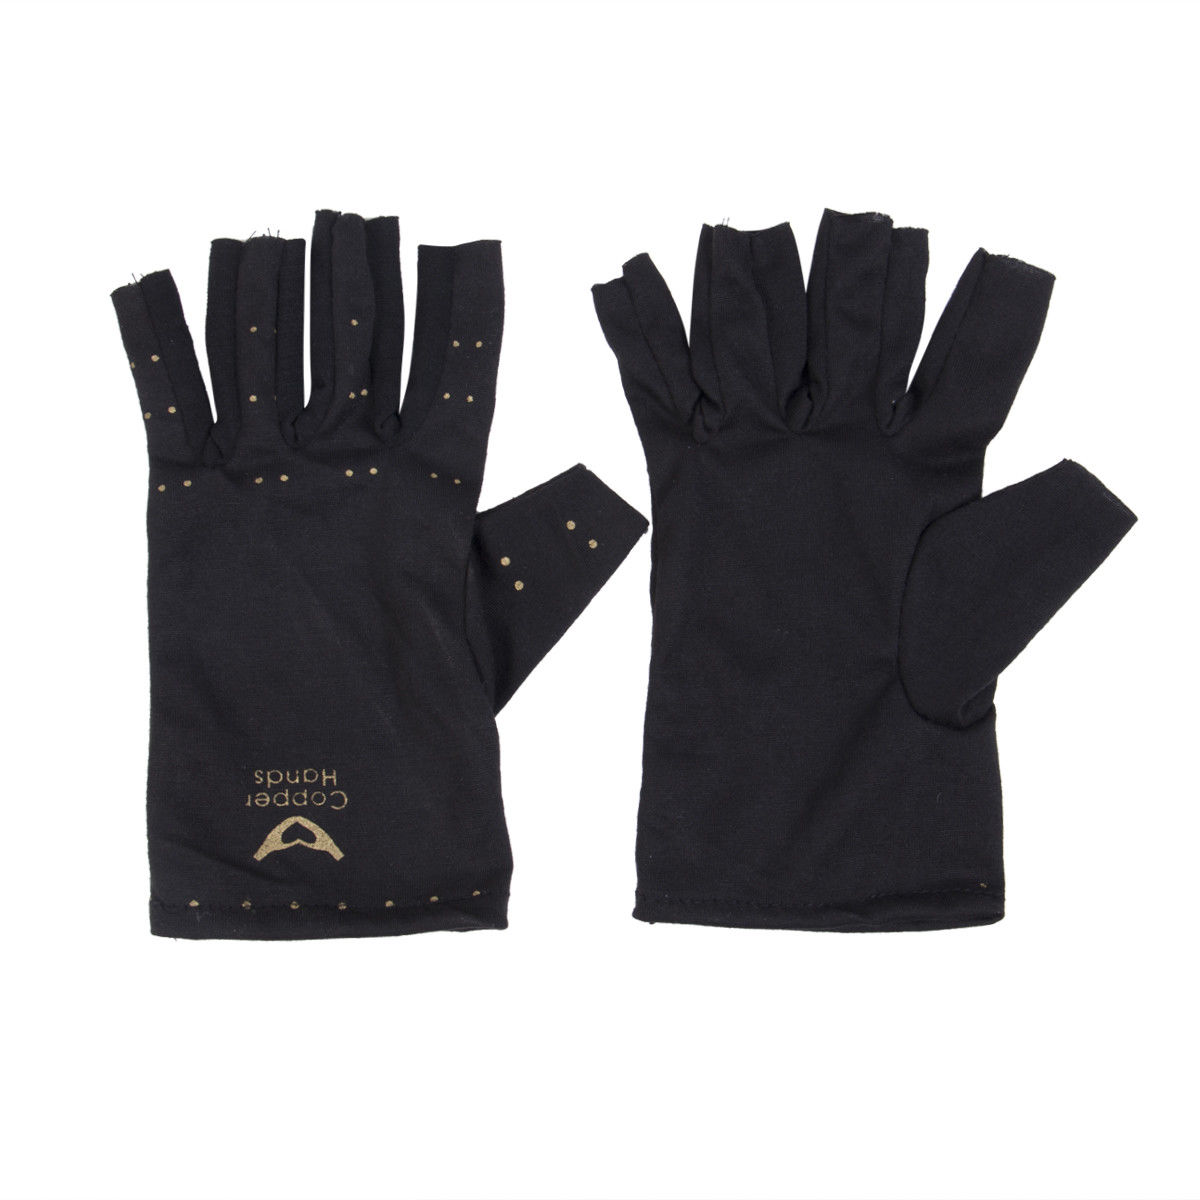 ITFABS Newest Arrivals Fashion Hot Anti Arthritis Hands Copper Therapy Compression Copper Gloves Ache Pain Relief